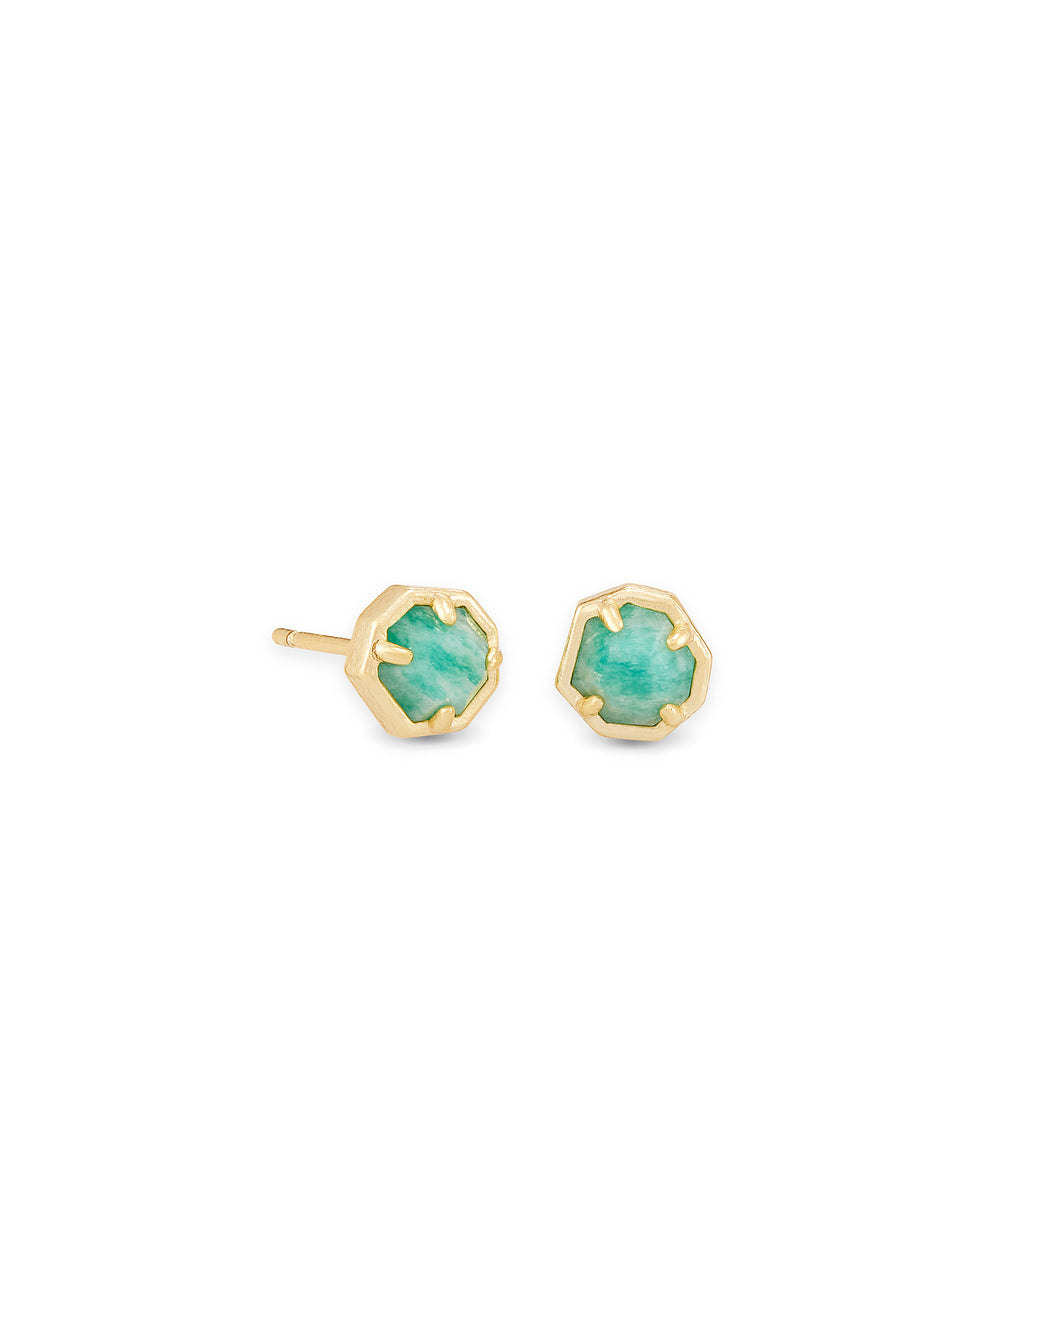 Nola Stud Earrings